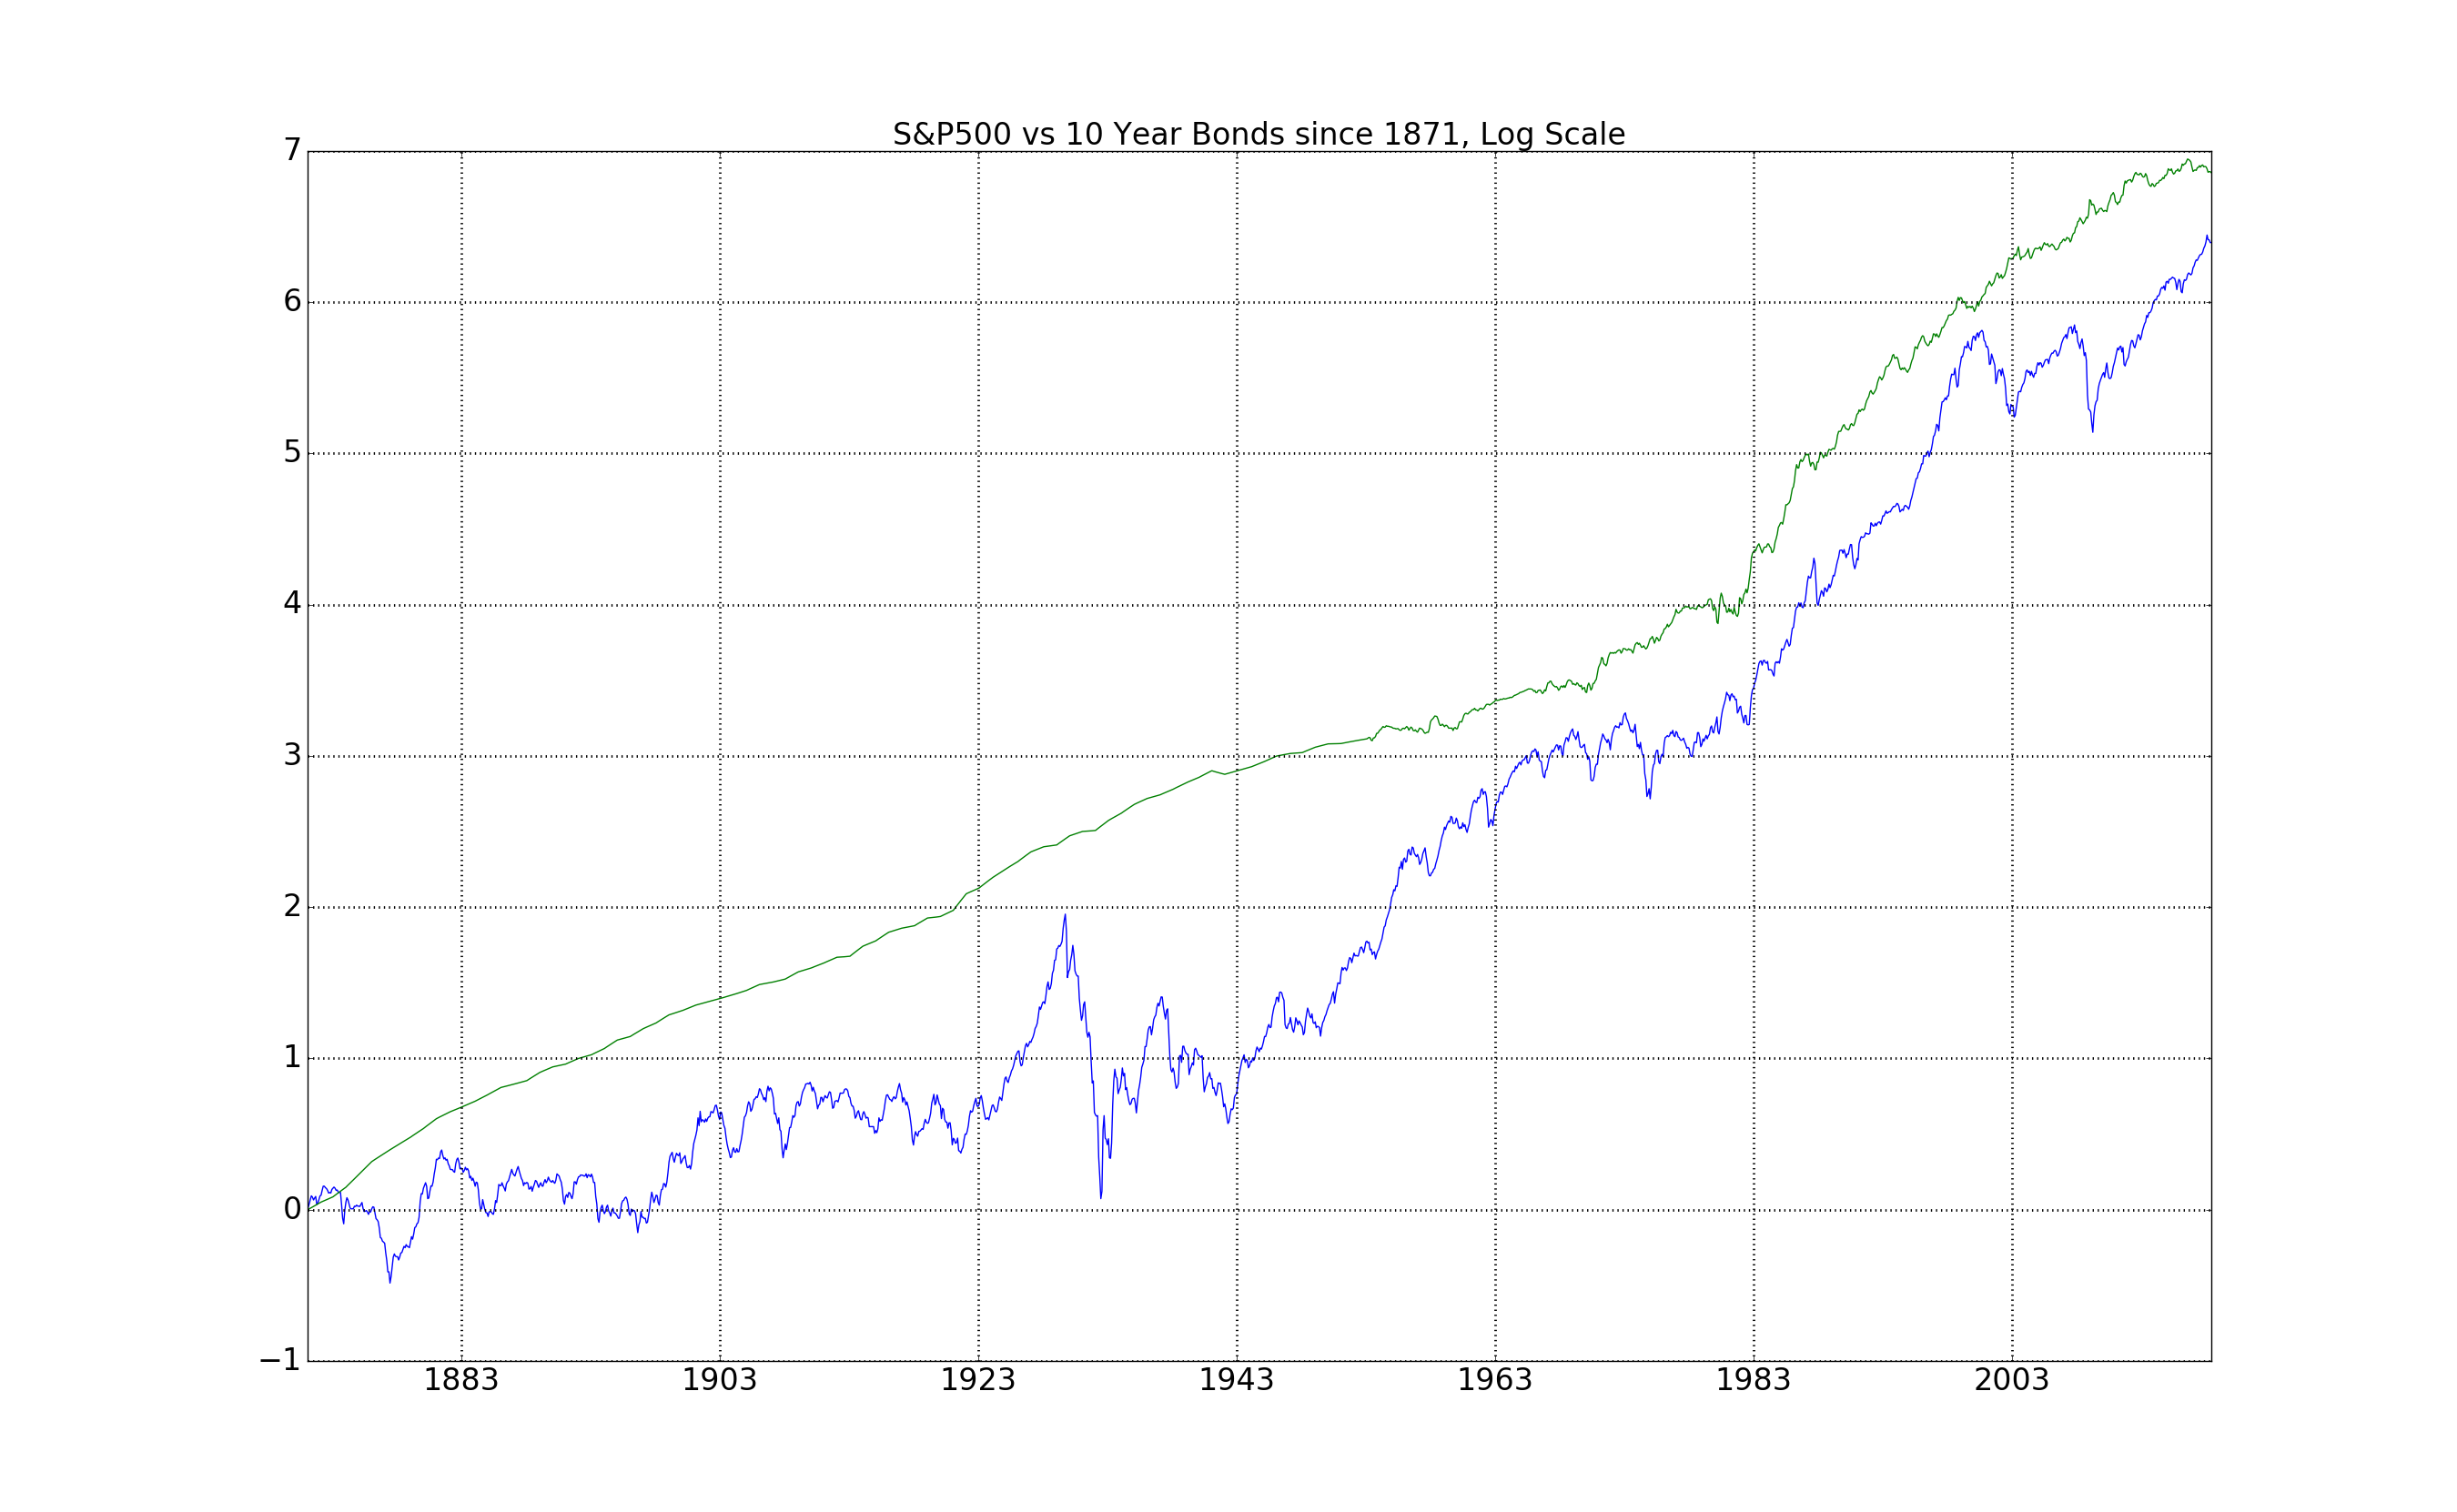 S&P500 vs 10 Year Bonds since 1871, Log Scale